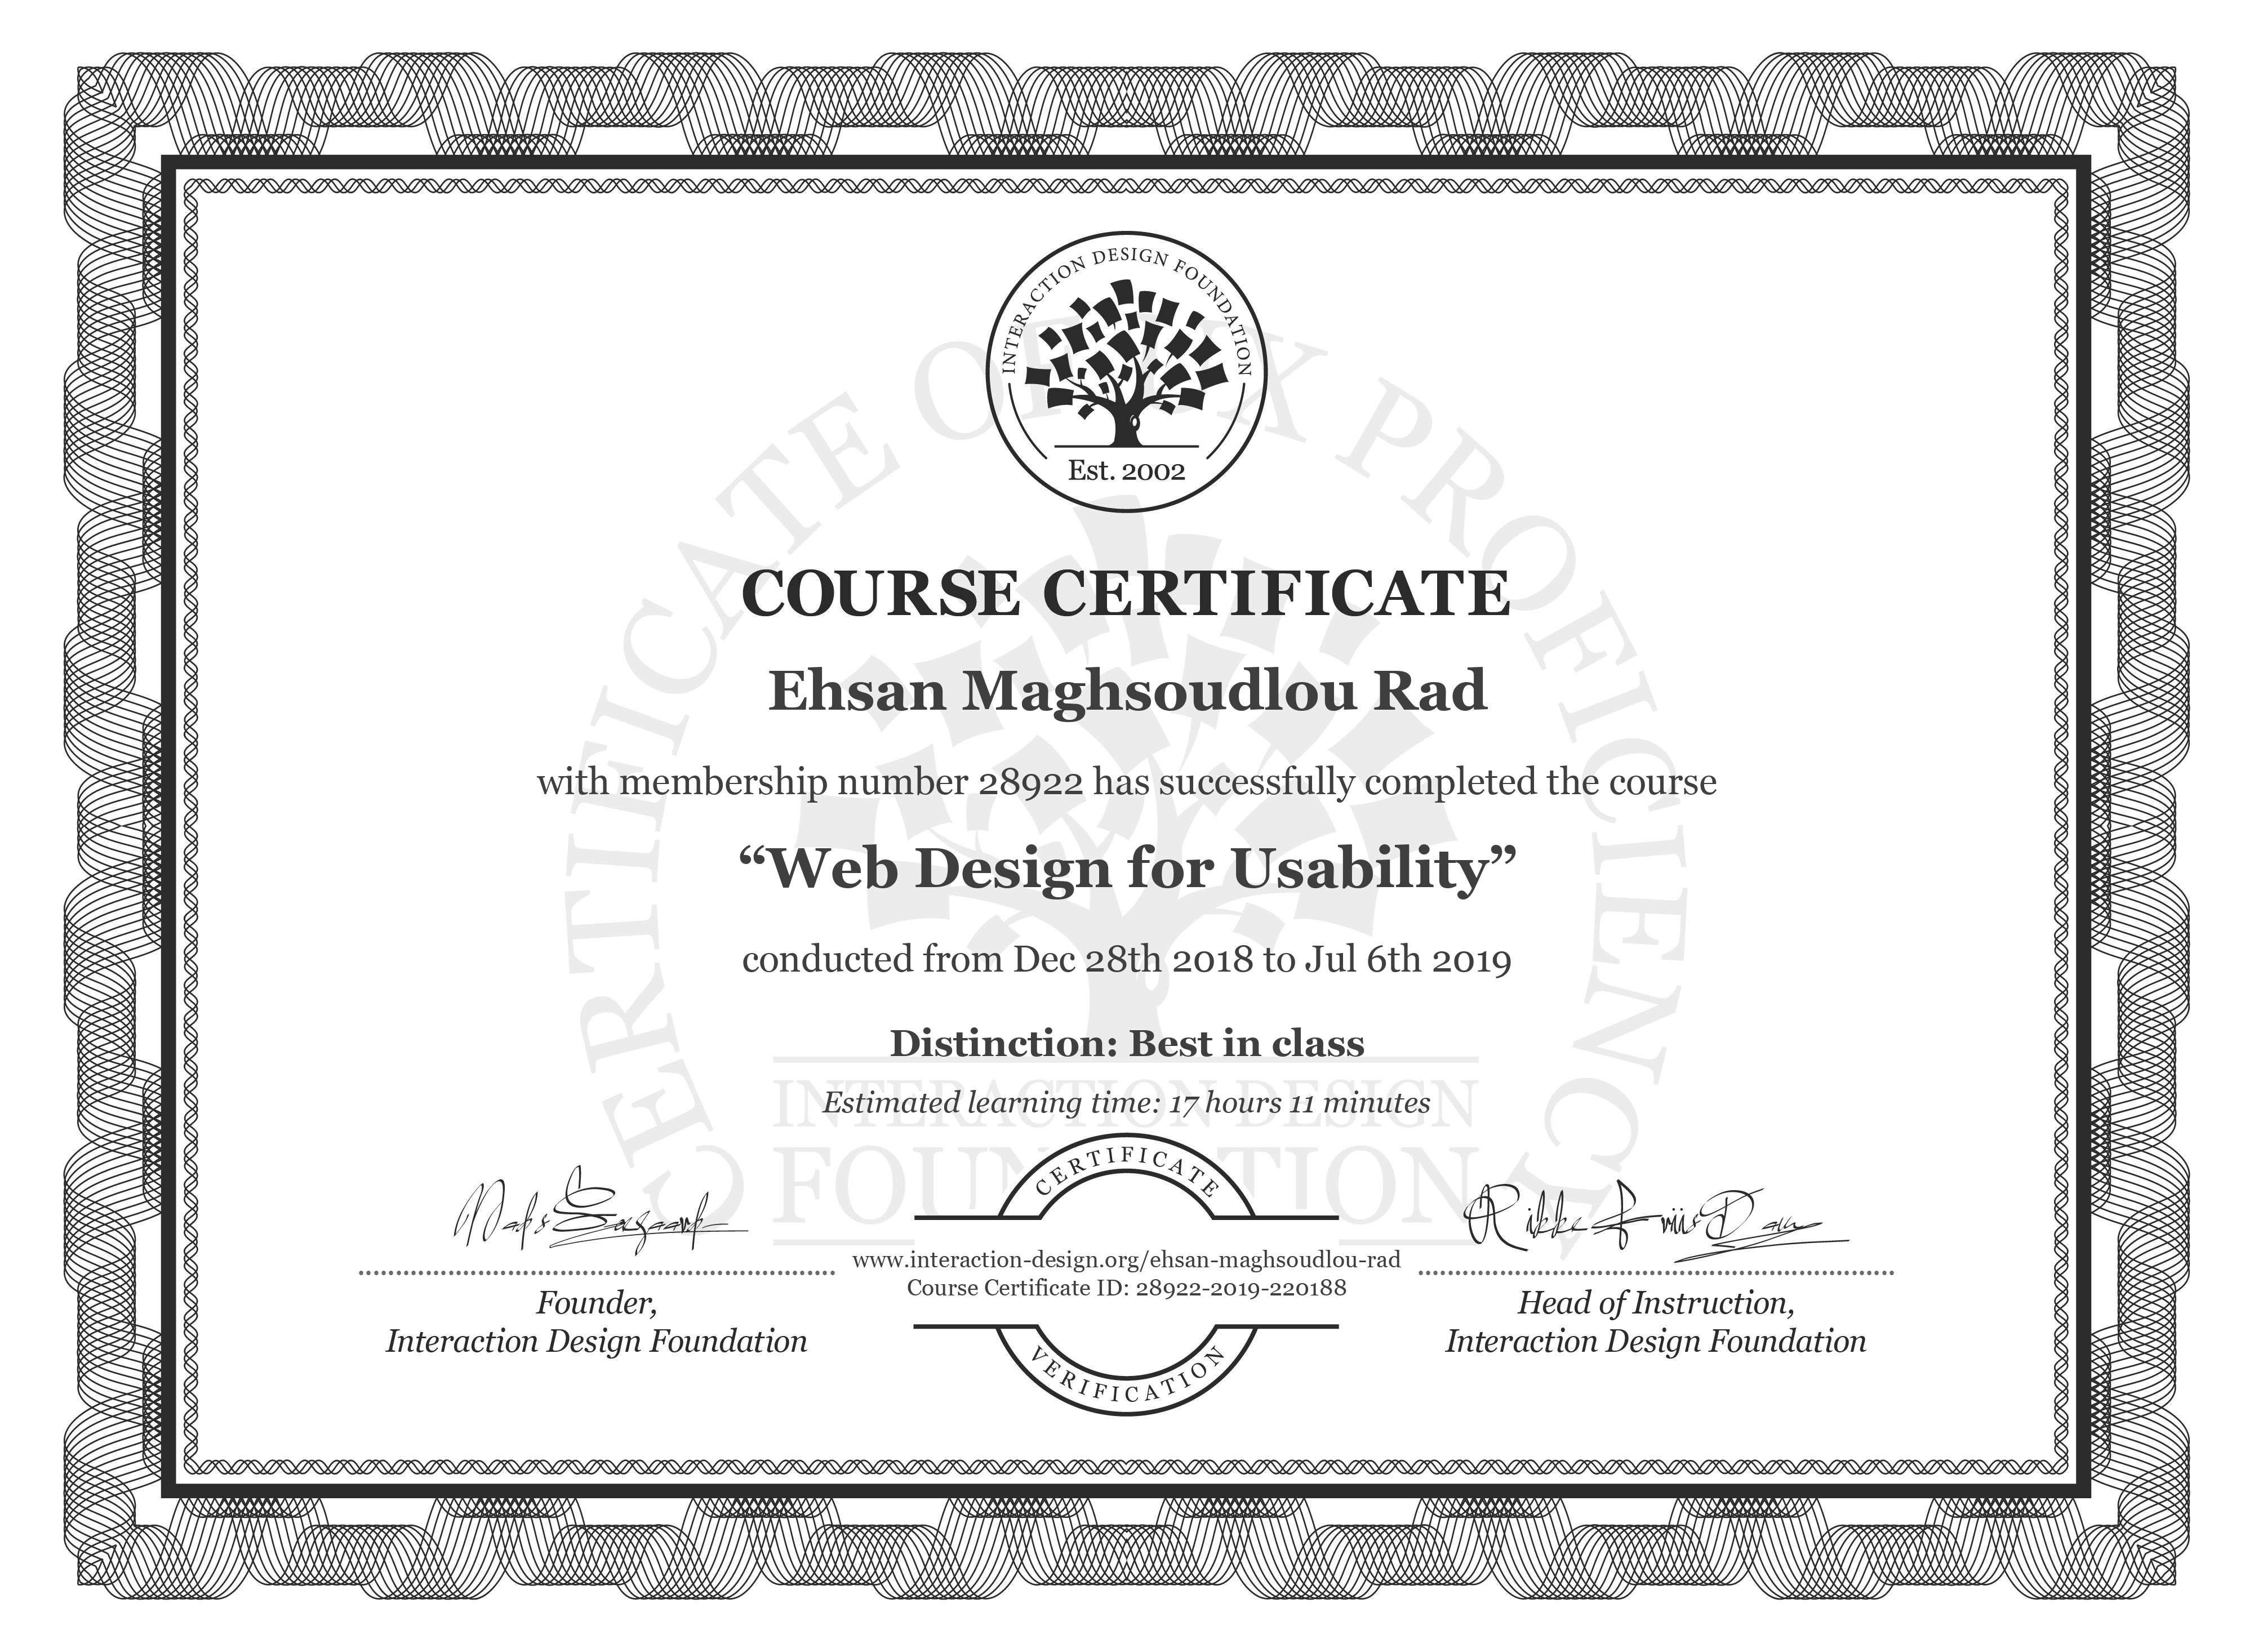 Ehsan Maghsoudlou Rad's Course Certificate: Web Design for Usability